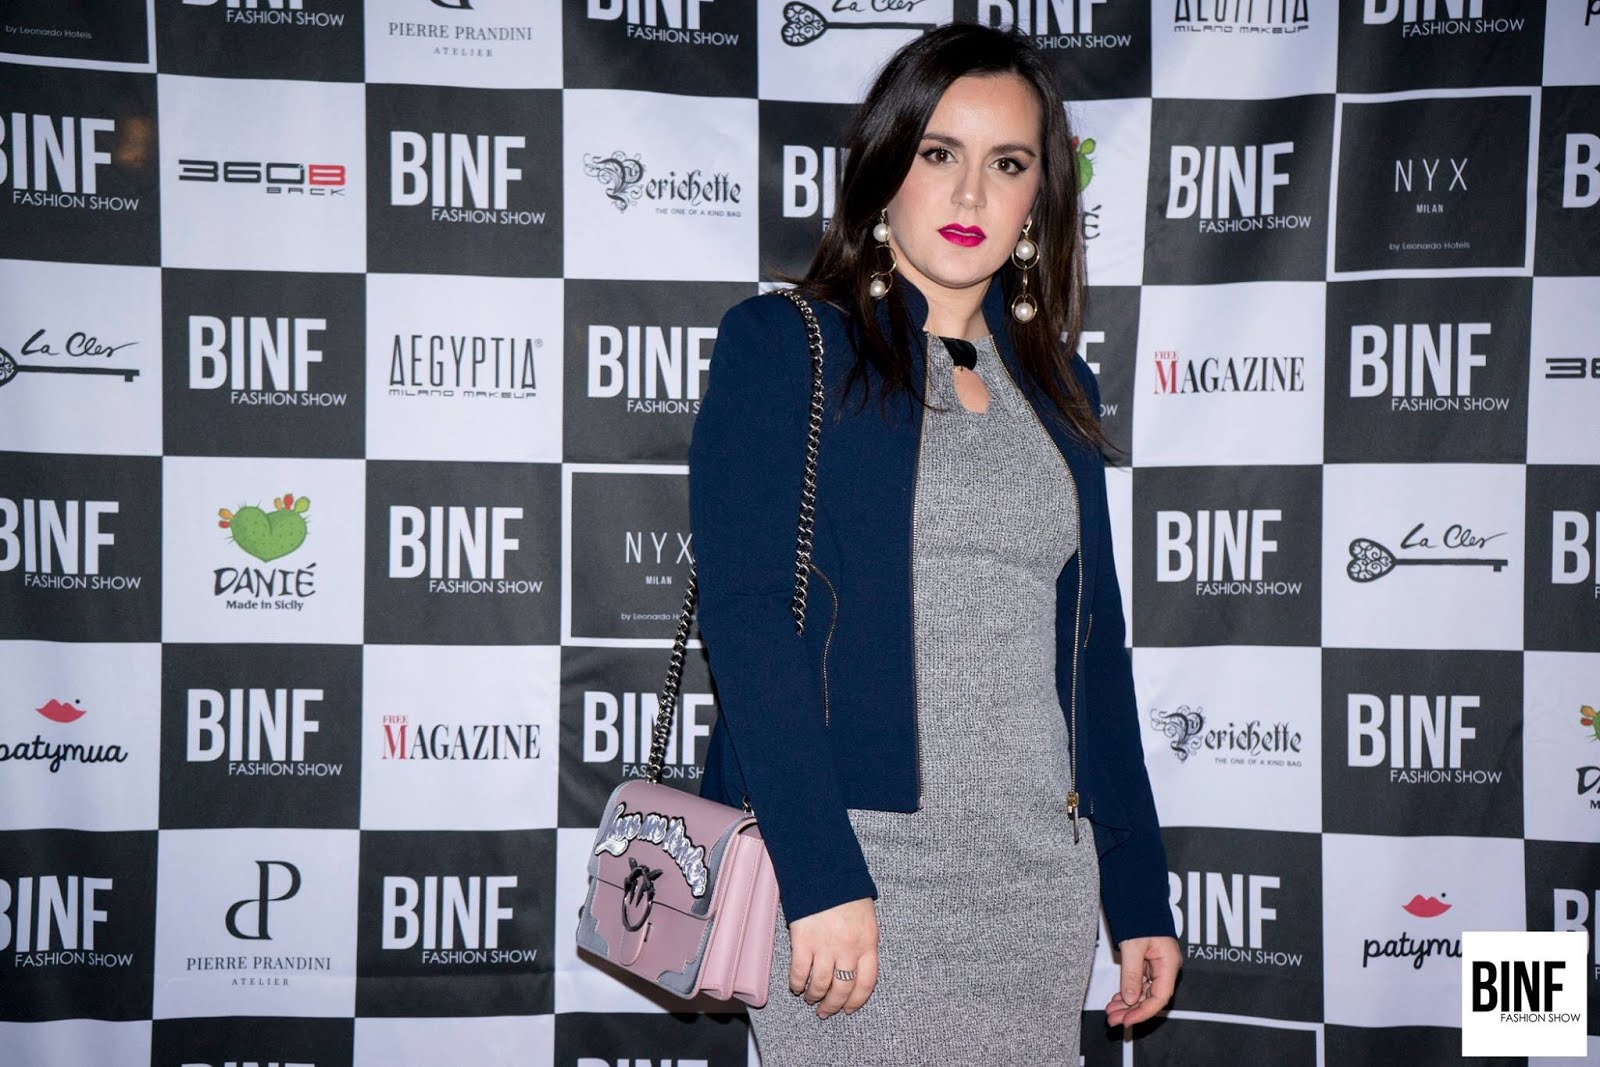 Press BINF Fashion Show - Milano Fashion Week 25 febbraio 2018 (Italy) Marzia Amaranto